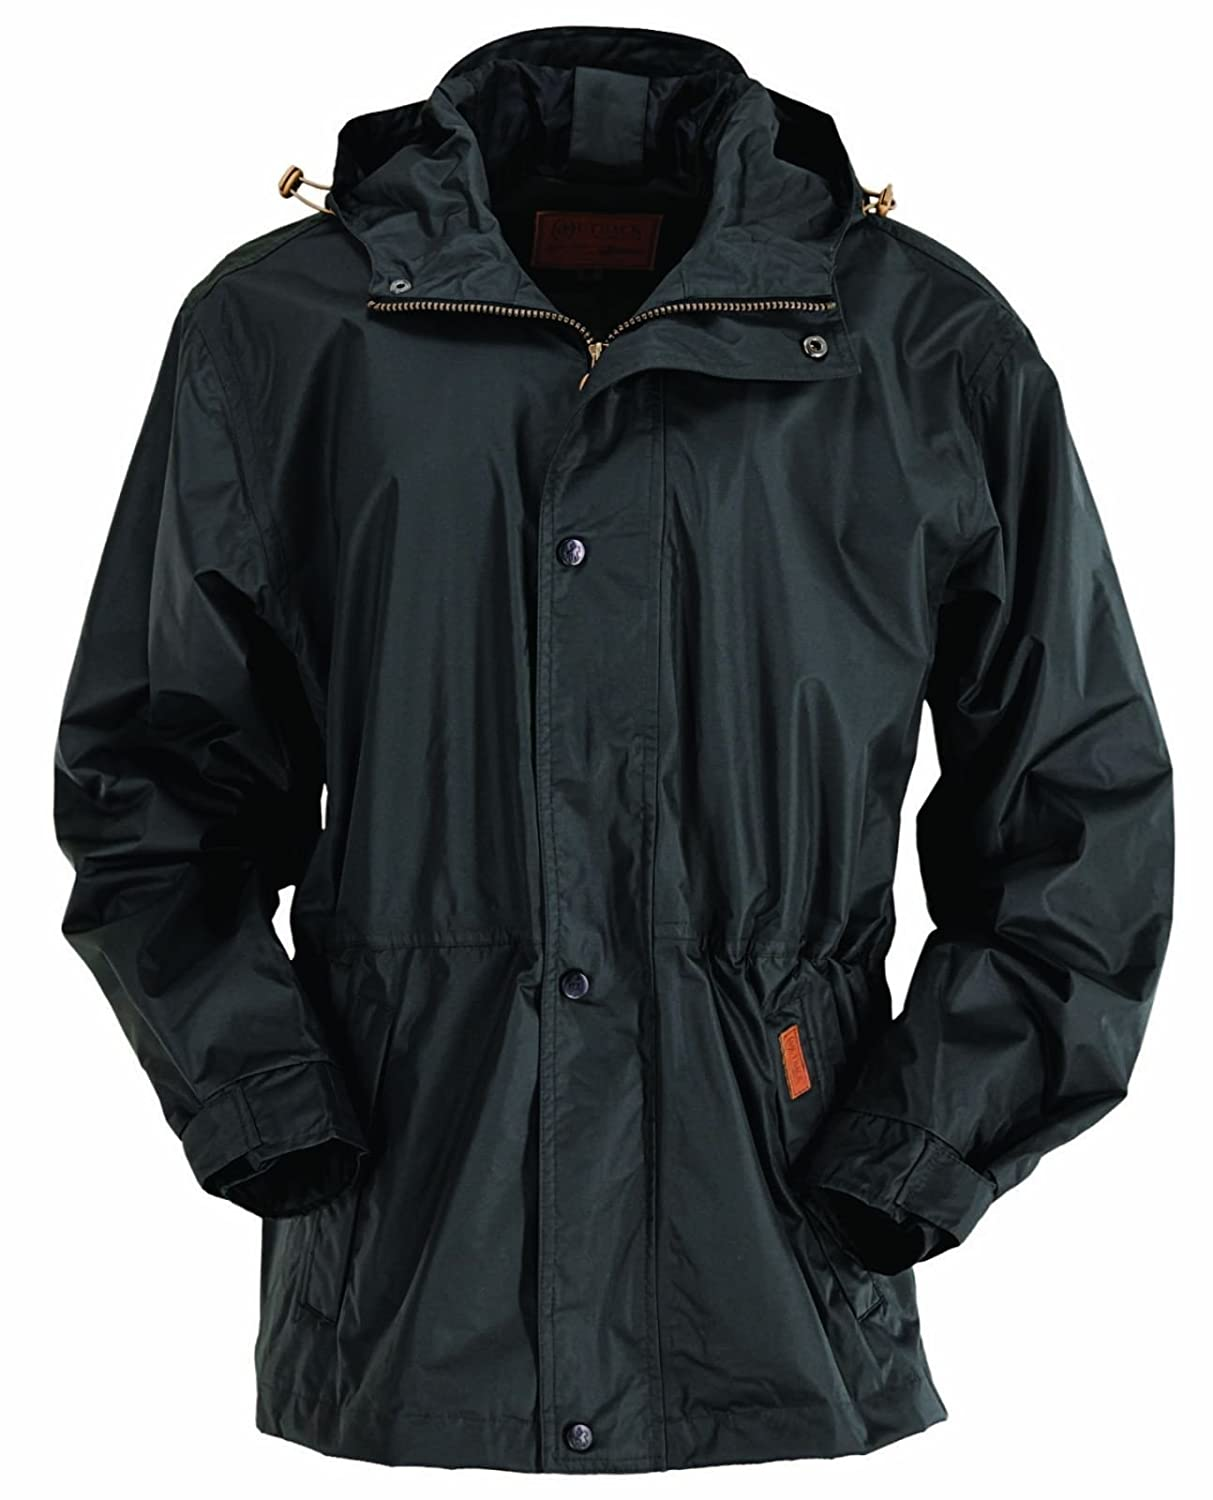 Outback Trading OUTERWEAR メンズ ブラック XL  B00JAKQY6A